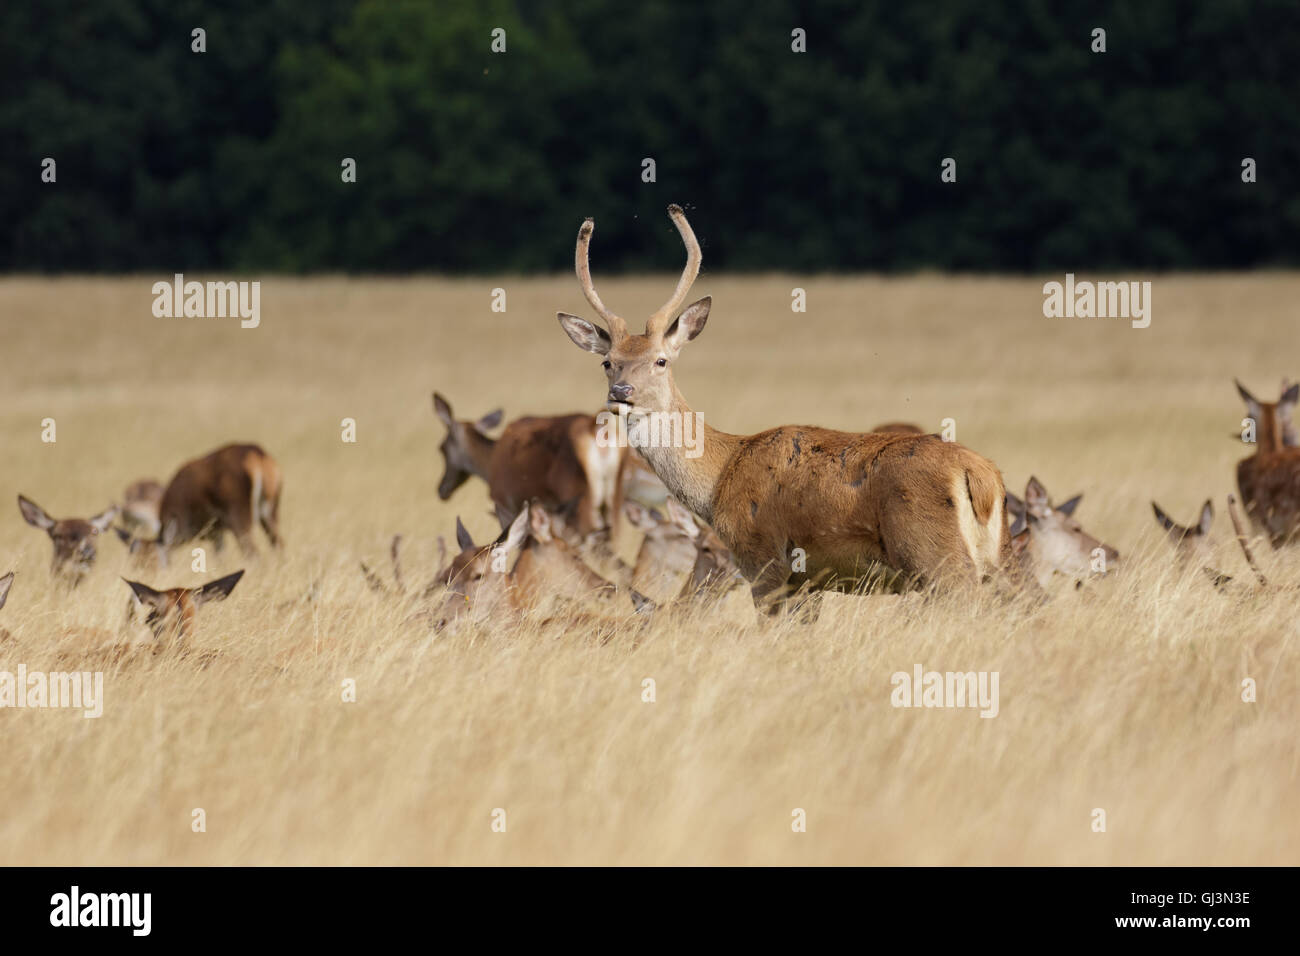 Young Red Deer stag or pricket (Cervus elaphus) with herd in long grass - Stock Image